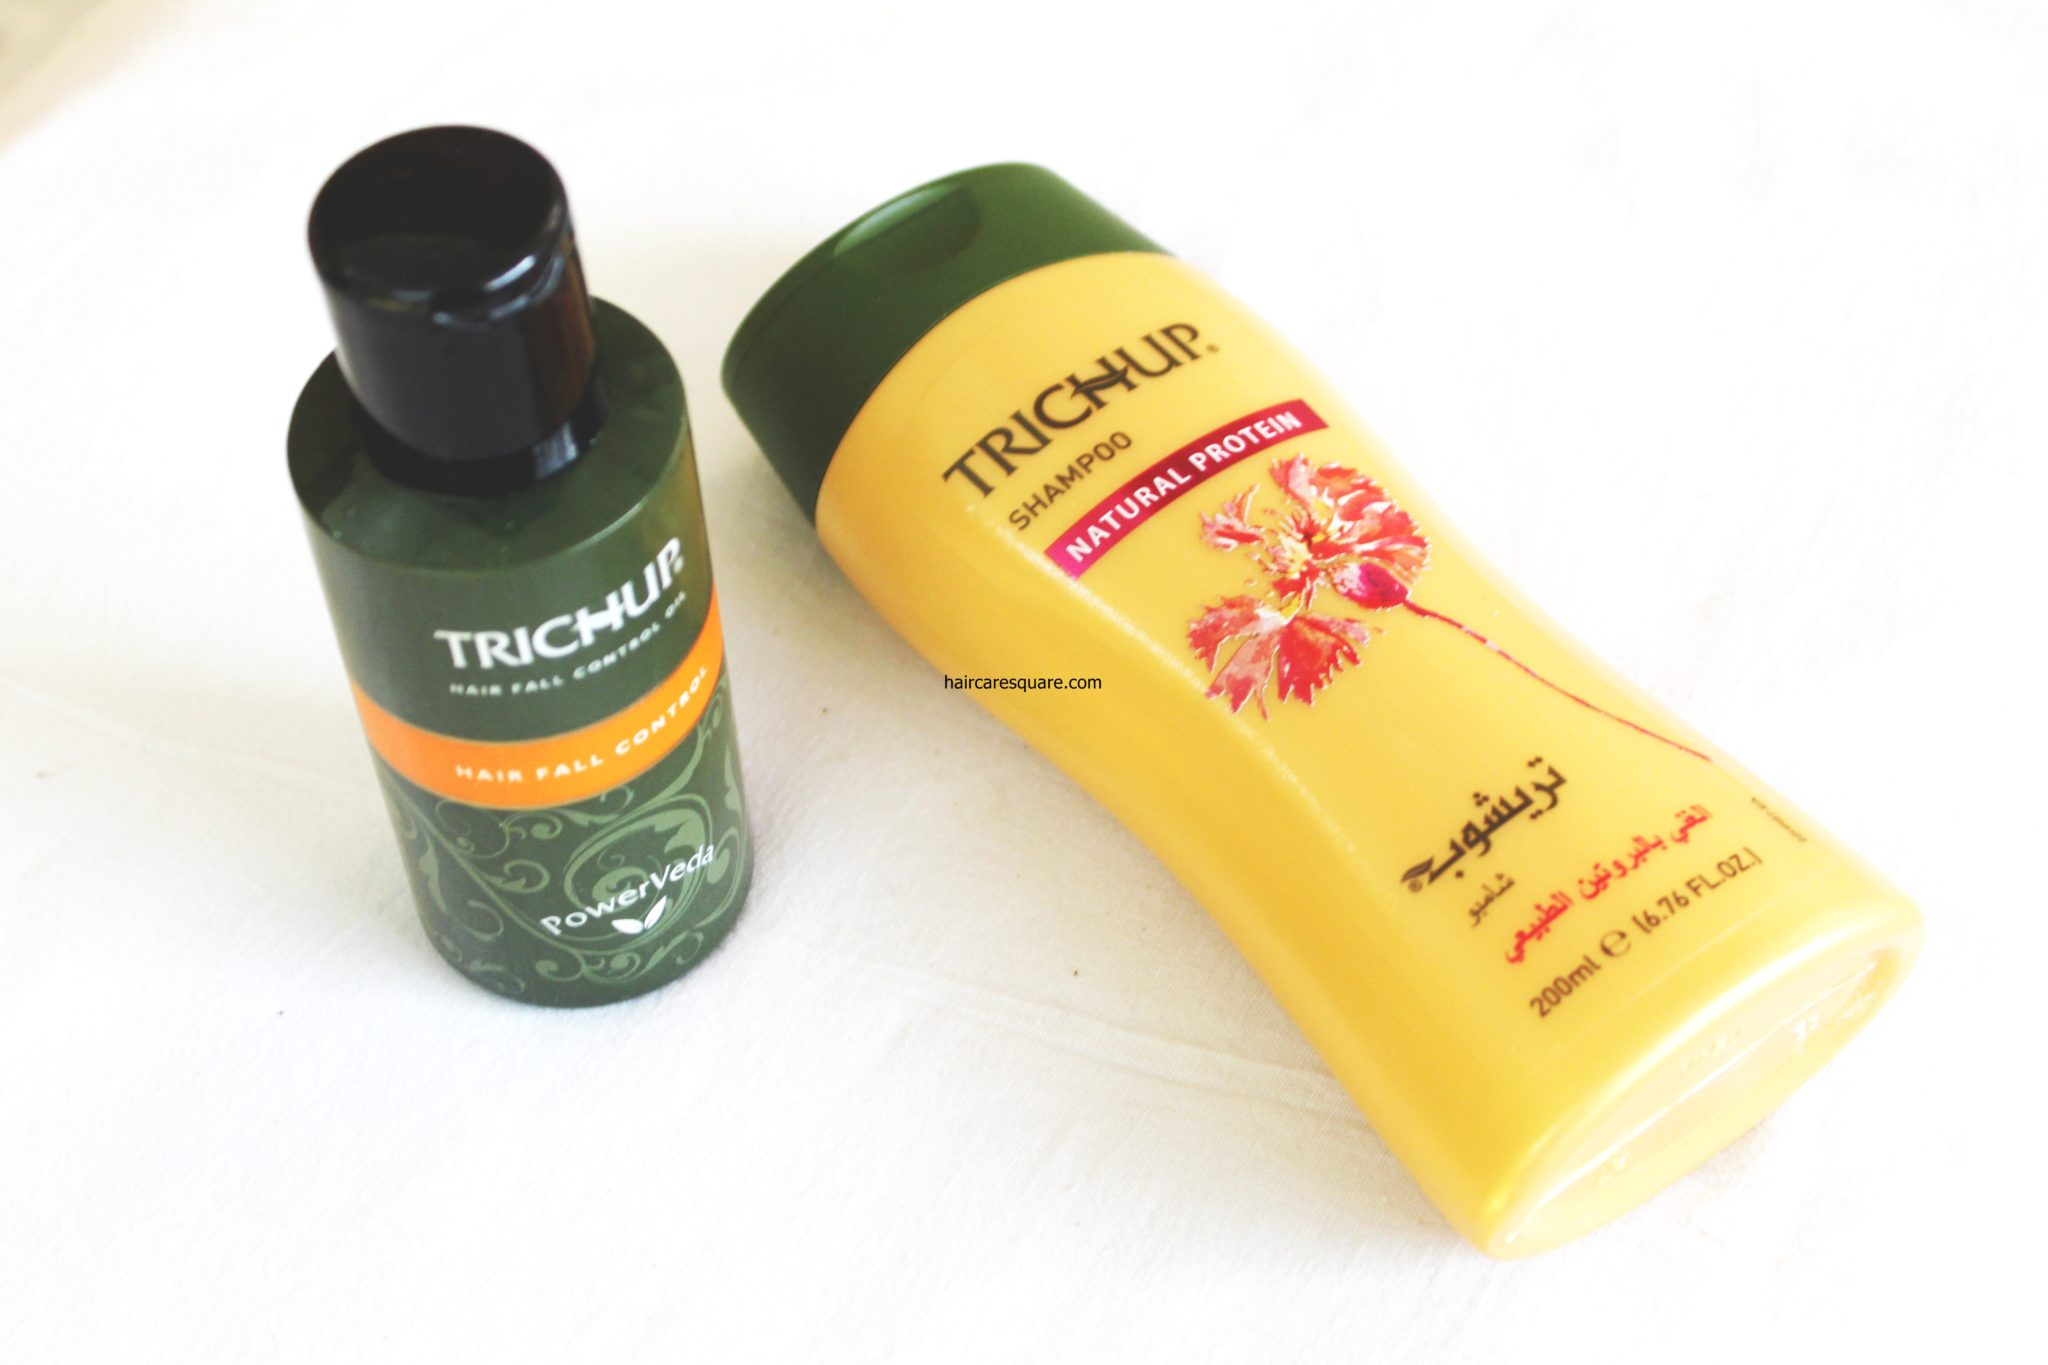 trichup shampoo review